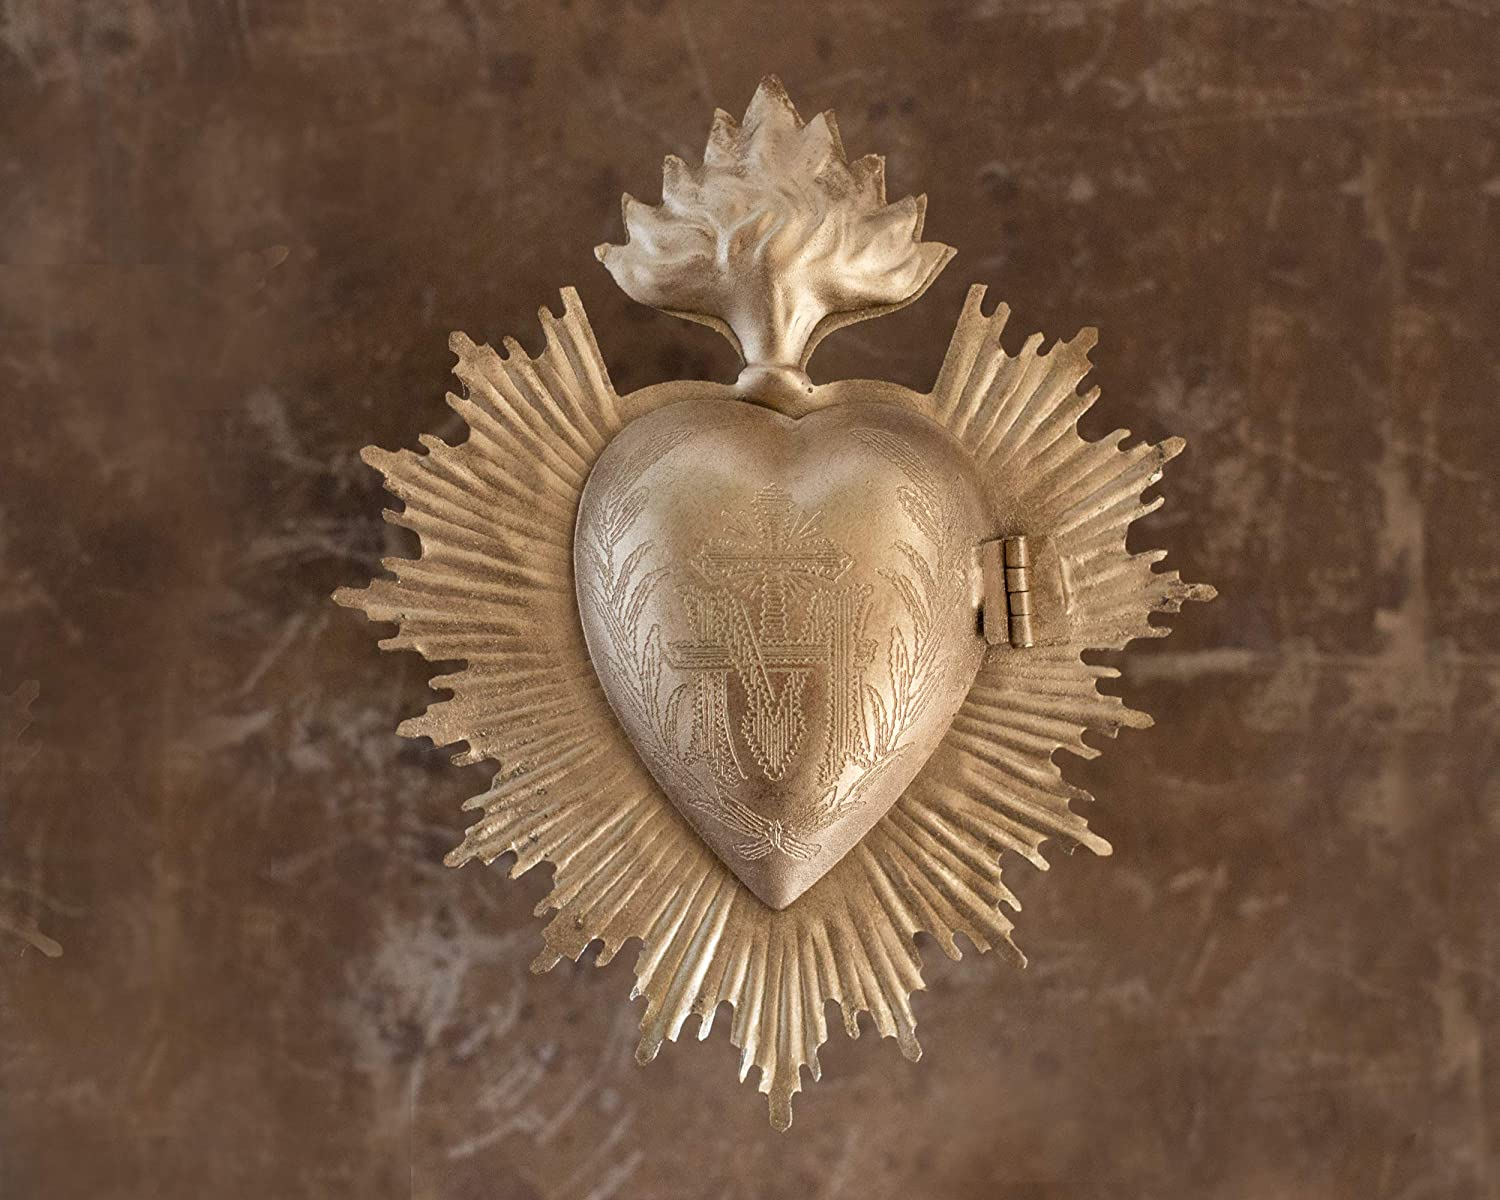 Milagro heart box - the perfect French country decor item or gift. Tuck a little prayer or message inside. #frenchcountry #homedecor #oldworldstyle #frenchgifts #milagro #religiousdecor #vintagestyle